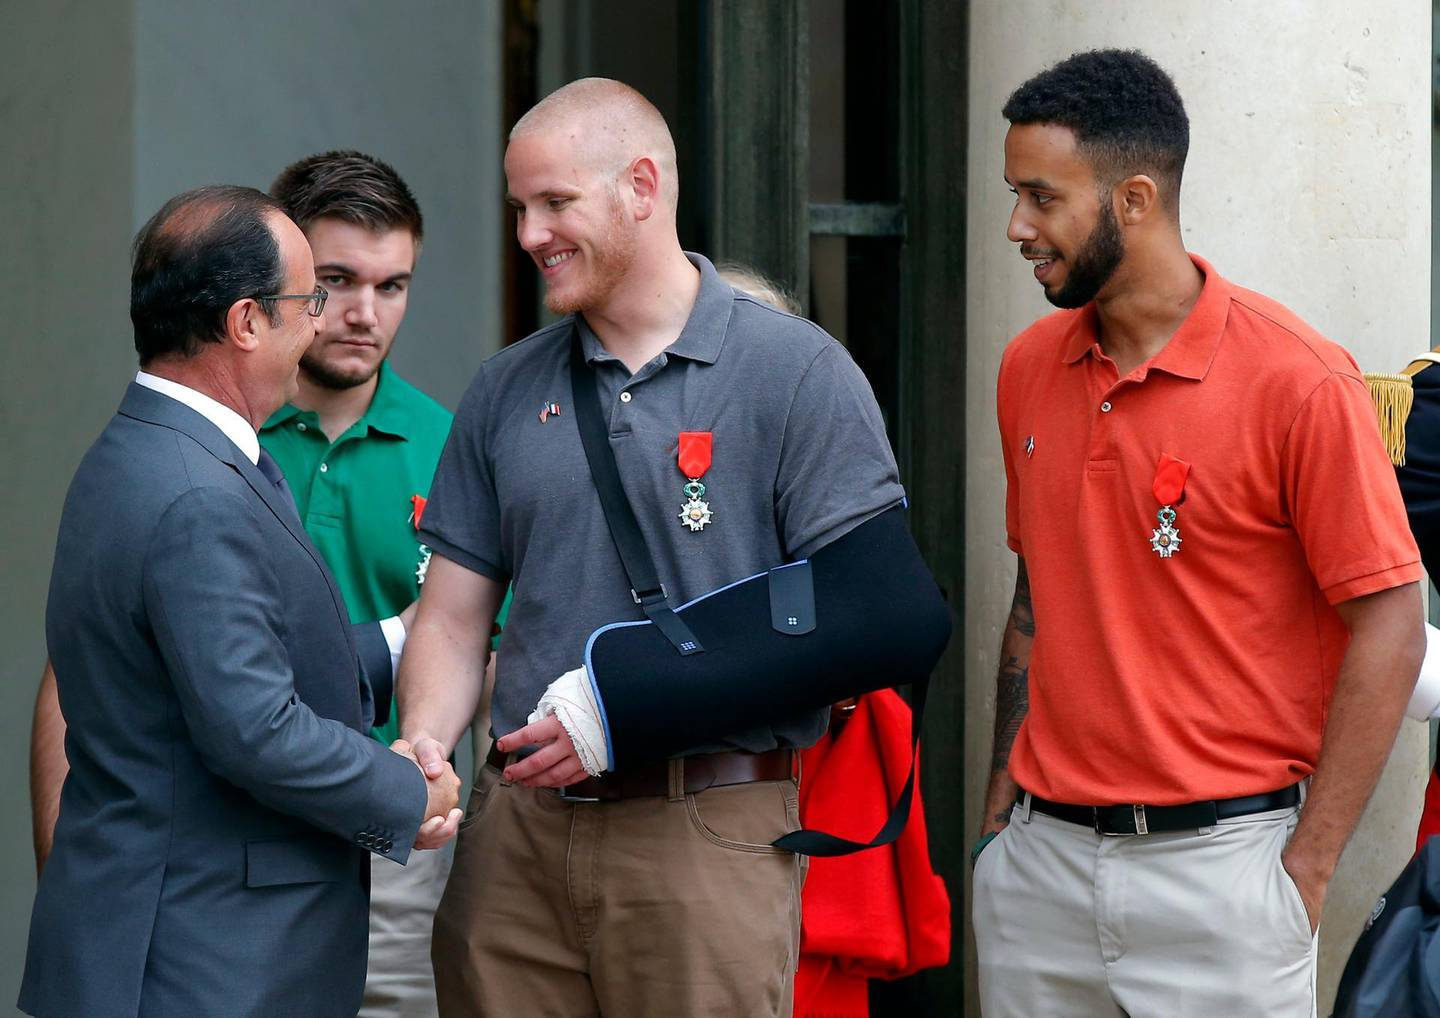 FILE - In this Aug. 24, 2015 file photo, French President Francois Hollande bids farewell to U.S. Airman Spencer Stone as U.S. National Guardsman Alek Skarlatos of Roseburg, Ore., second from left, and Anthony Sadler, a senior at Sacramento State University in California, right, after Hollande awarded them the French Legion of Honor at the Elysee Palace in Paris. The three Sacramento-area men are lorded for their bravery in thwarting a terror attack on a French train in 2015. Islamic State operative Ayoub El Khazzani goes on trial in France Monday Nov. 16, 2020, on terror charges for appearing on a train with an arsenal of weapons and shooting one passenger in 2015. (AP Photo/Michel Euler, File)